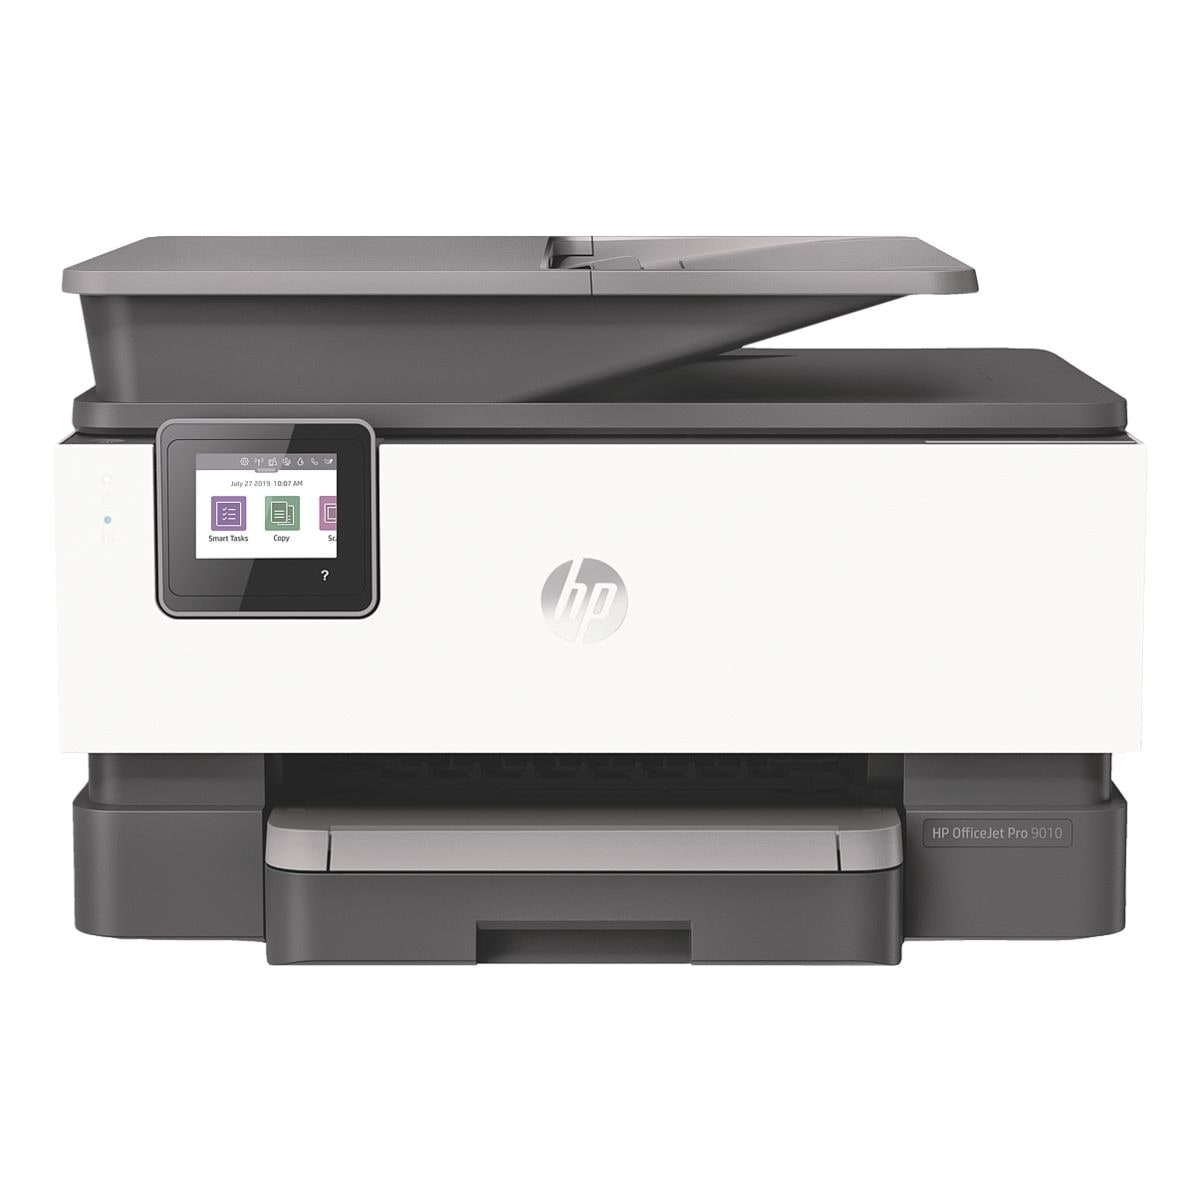 HP Multifunktionsdrucker »OfficeJet Pro 9010 All-in-One«